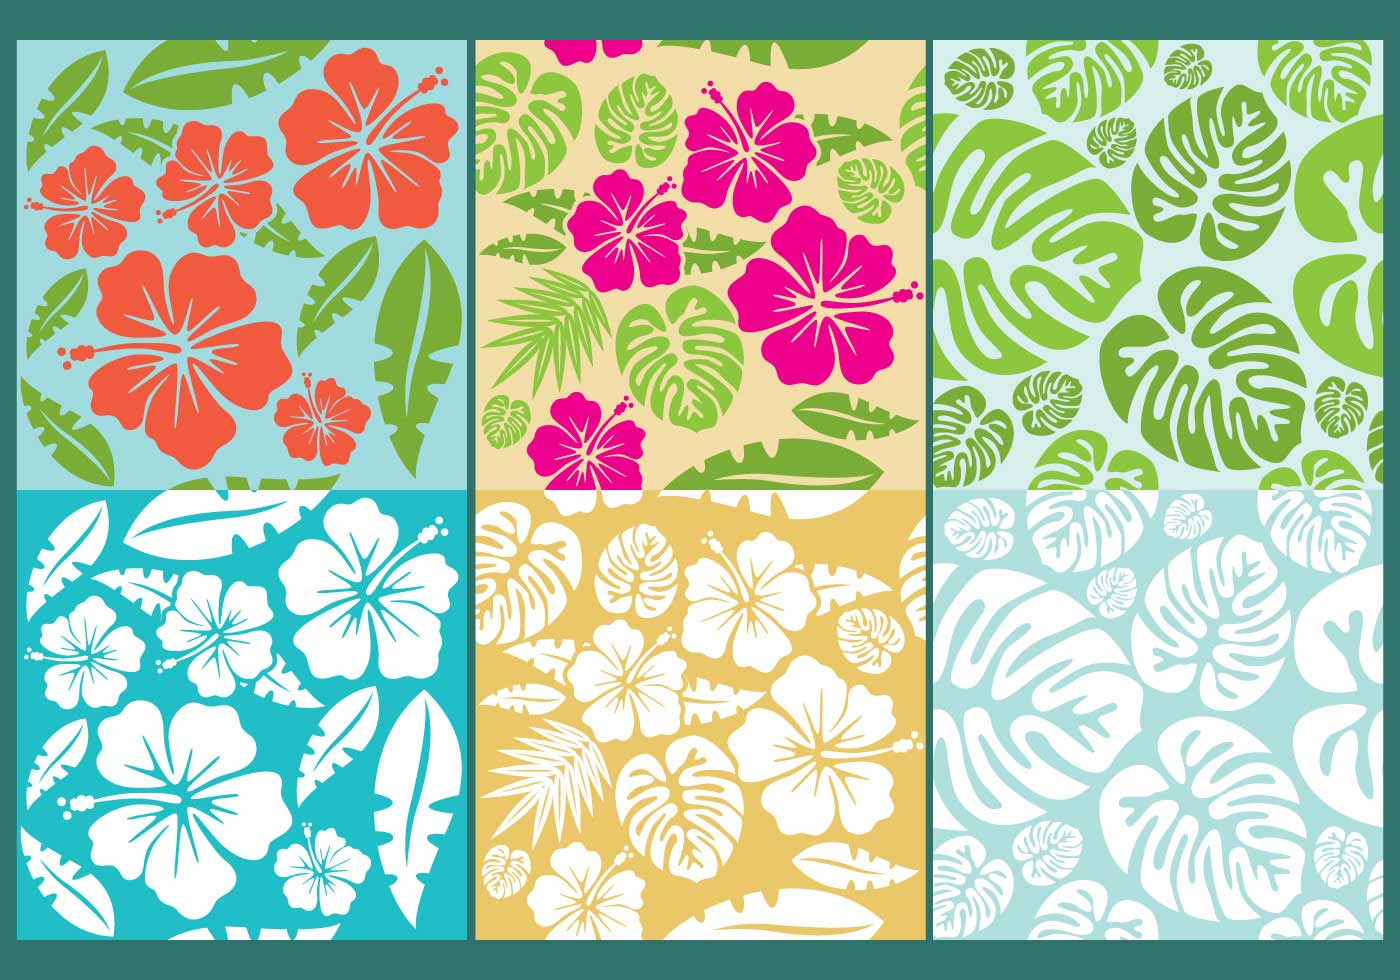 Hawaiian flowers pattern vectors download free vector art stock hawaiian flowers pattern vectors download free vector art stock graphics images izmirmasajfo